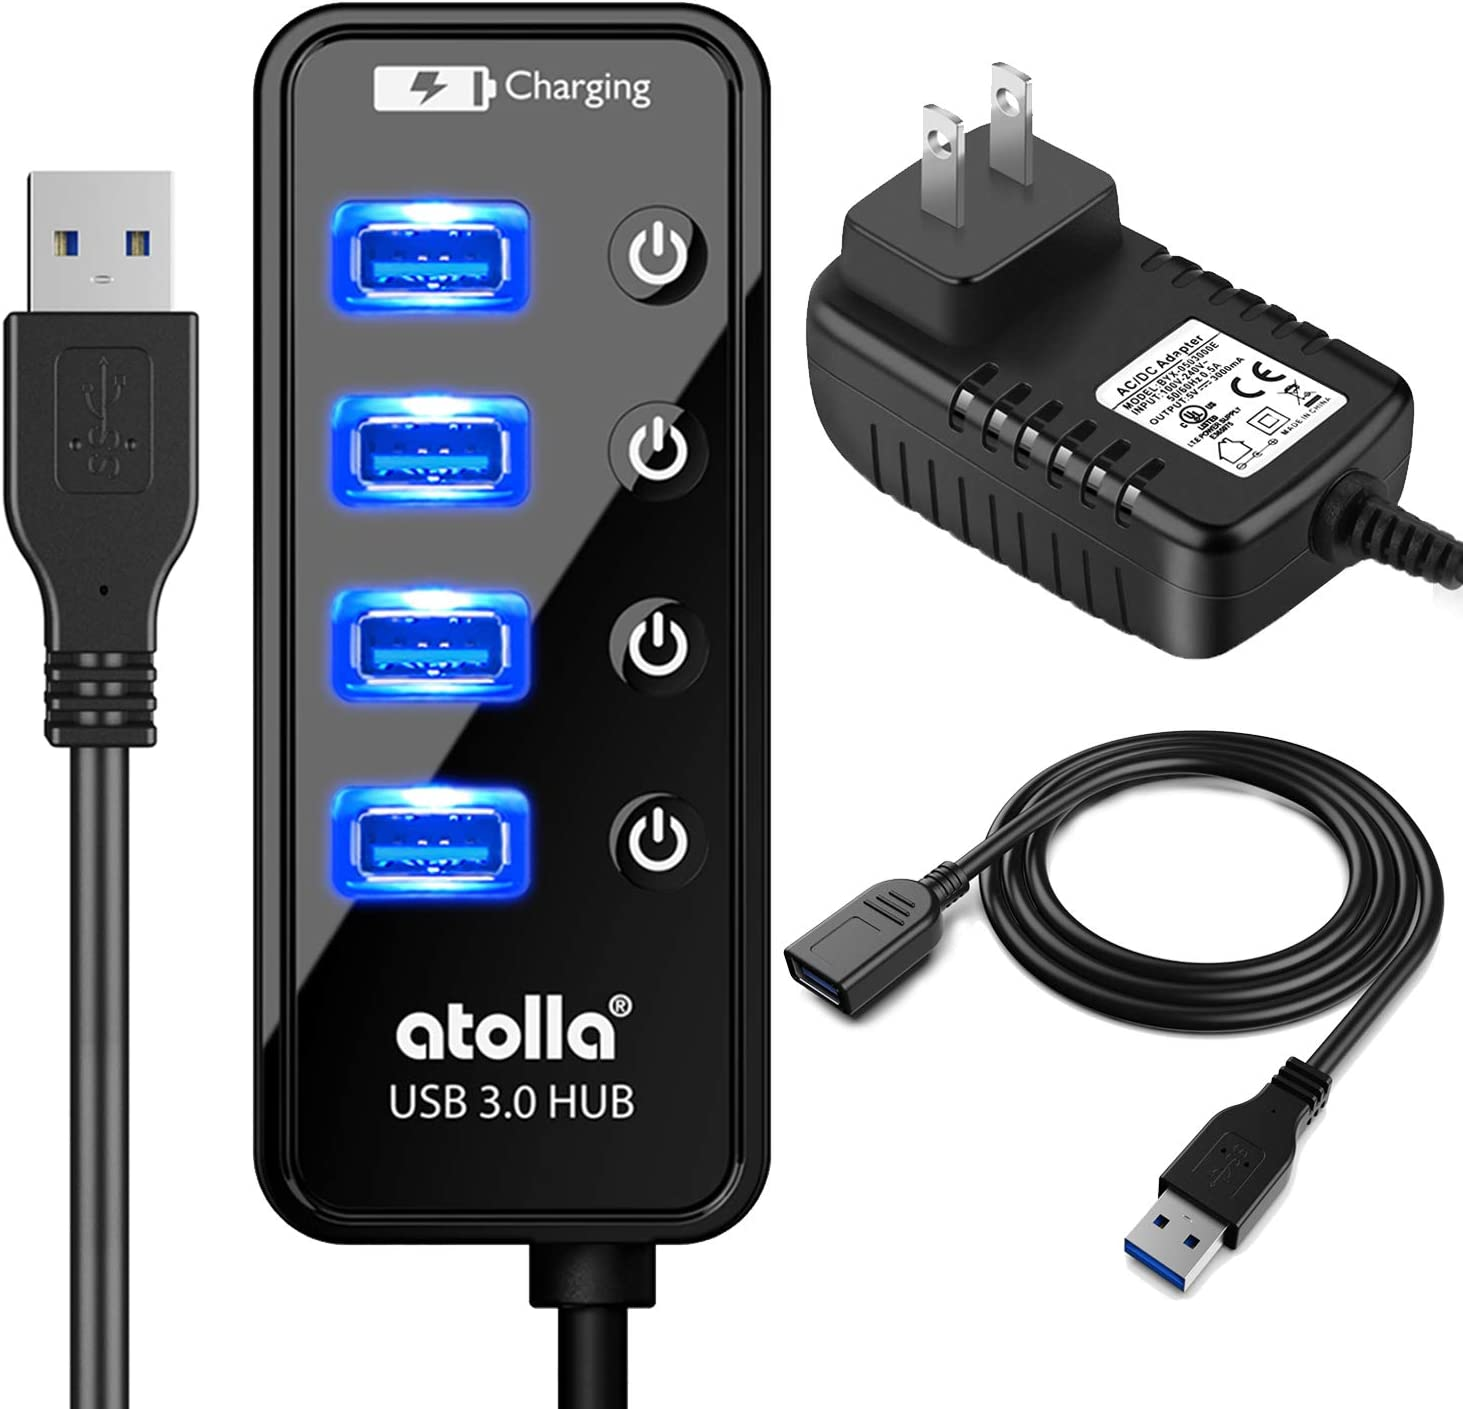 Powered USB Hub Long Cord, atolla USB 3.0 Hub 4 + 1 Data Transfer and Charging Multiport with Power Supply Adapter 15W (5V/3A) and 3.3ft Meter USB 3 Extension Cable